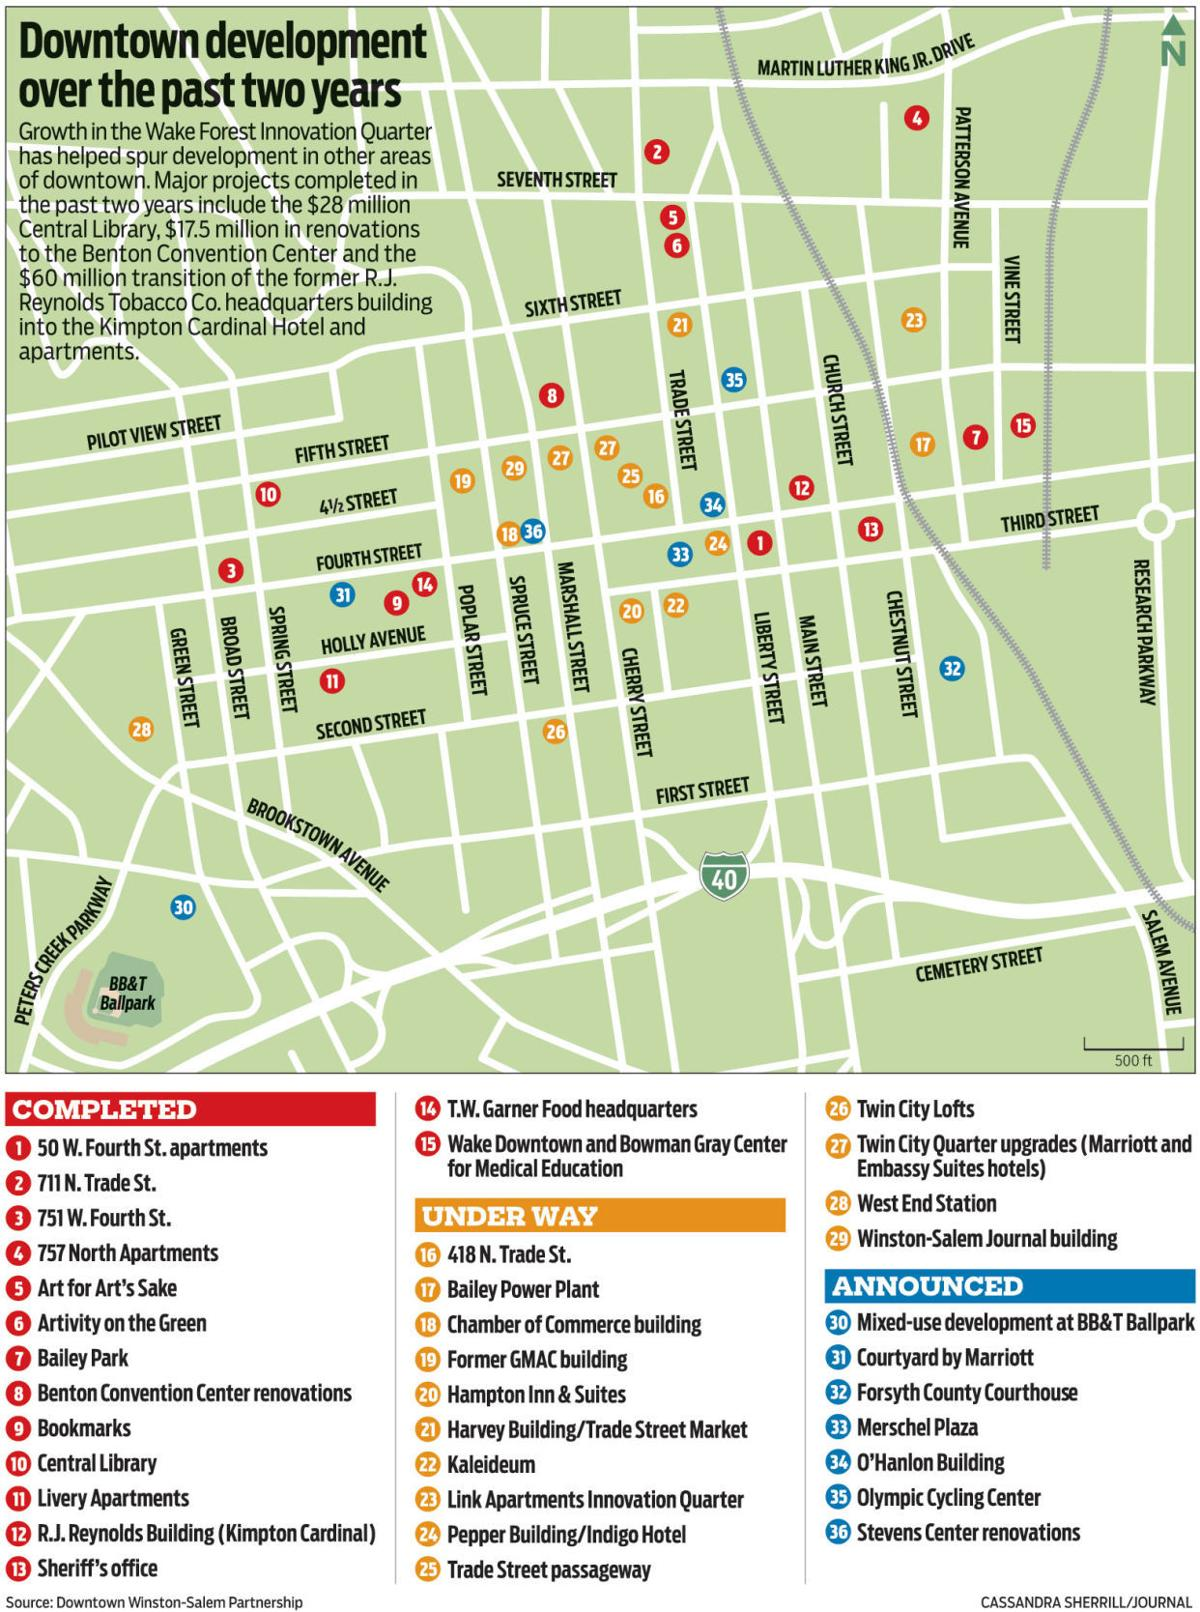 Spillover effect from revitalization lifting downtown